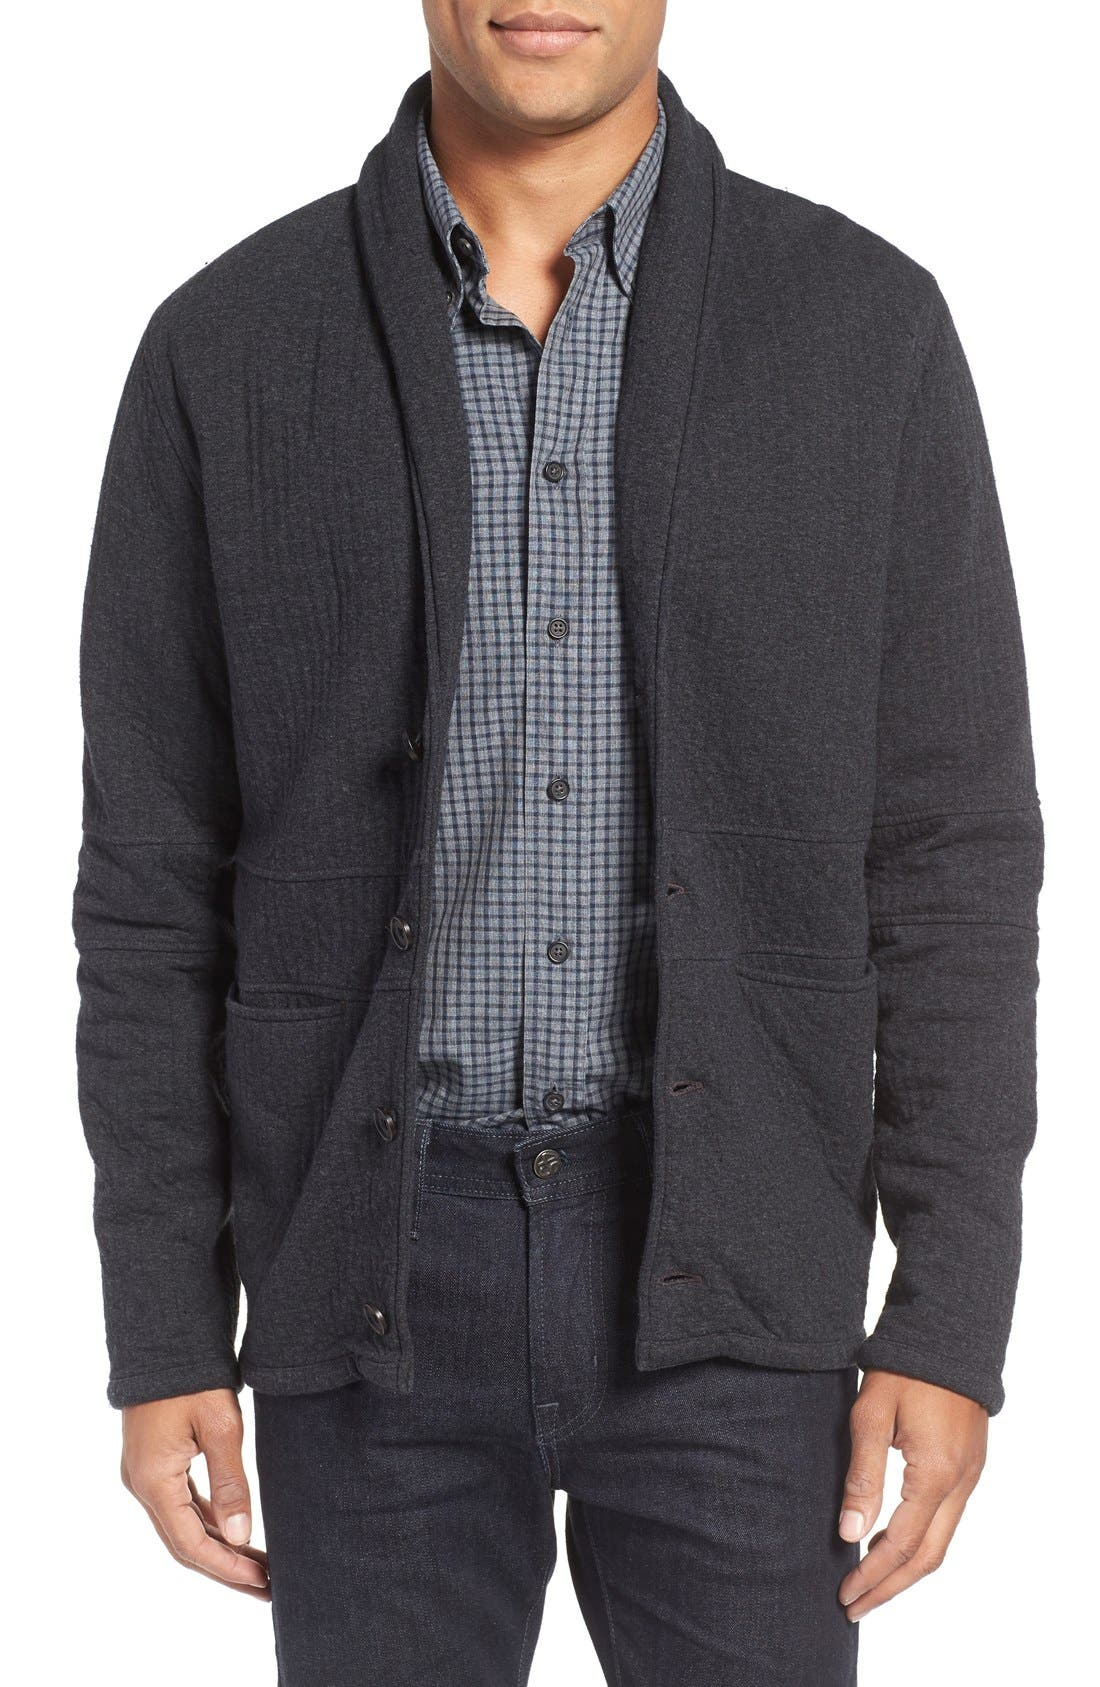 Men's Black Cardigan Sweaters & Jackets | Nordstrom